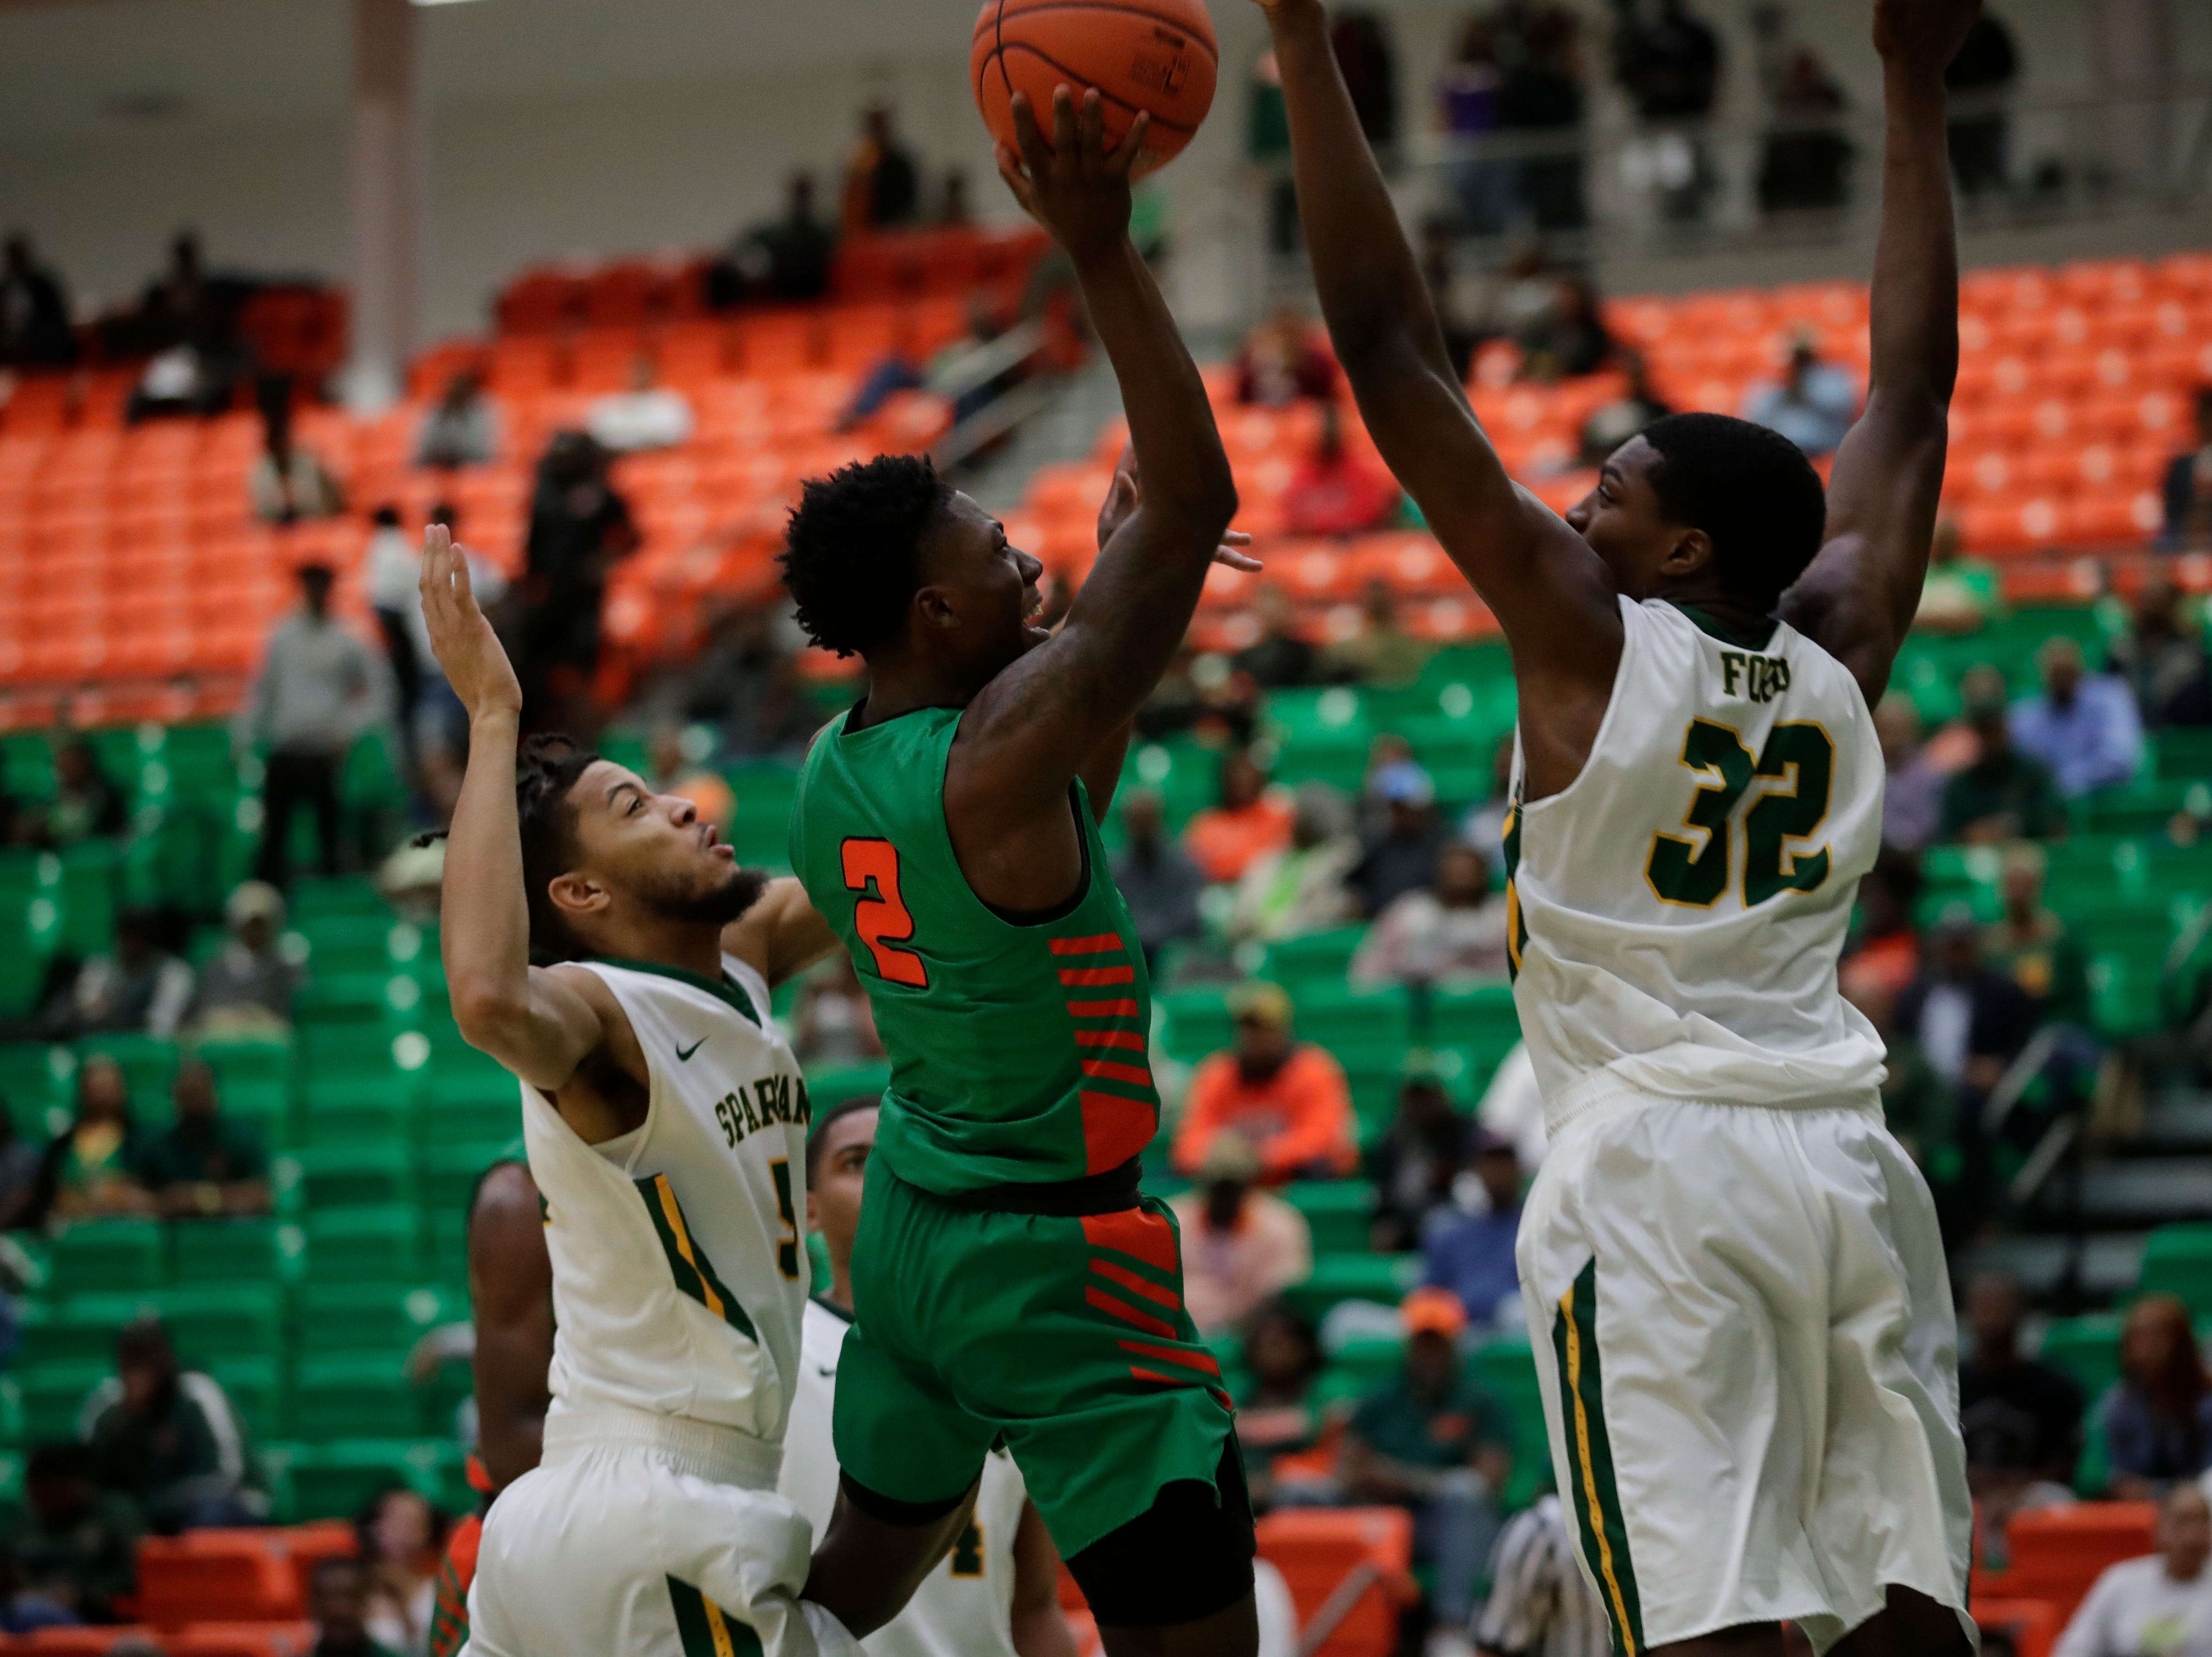 Florida A&M Rattlers guard Kamron Reaves (2) shoots over a double team by Norfolk State at the Alfred Lawson Jr. Multipurpose Center Monday, Feb. 11, 2019.